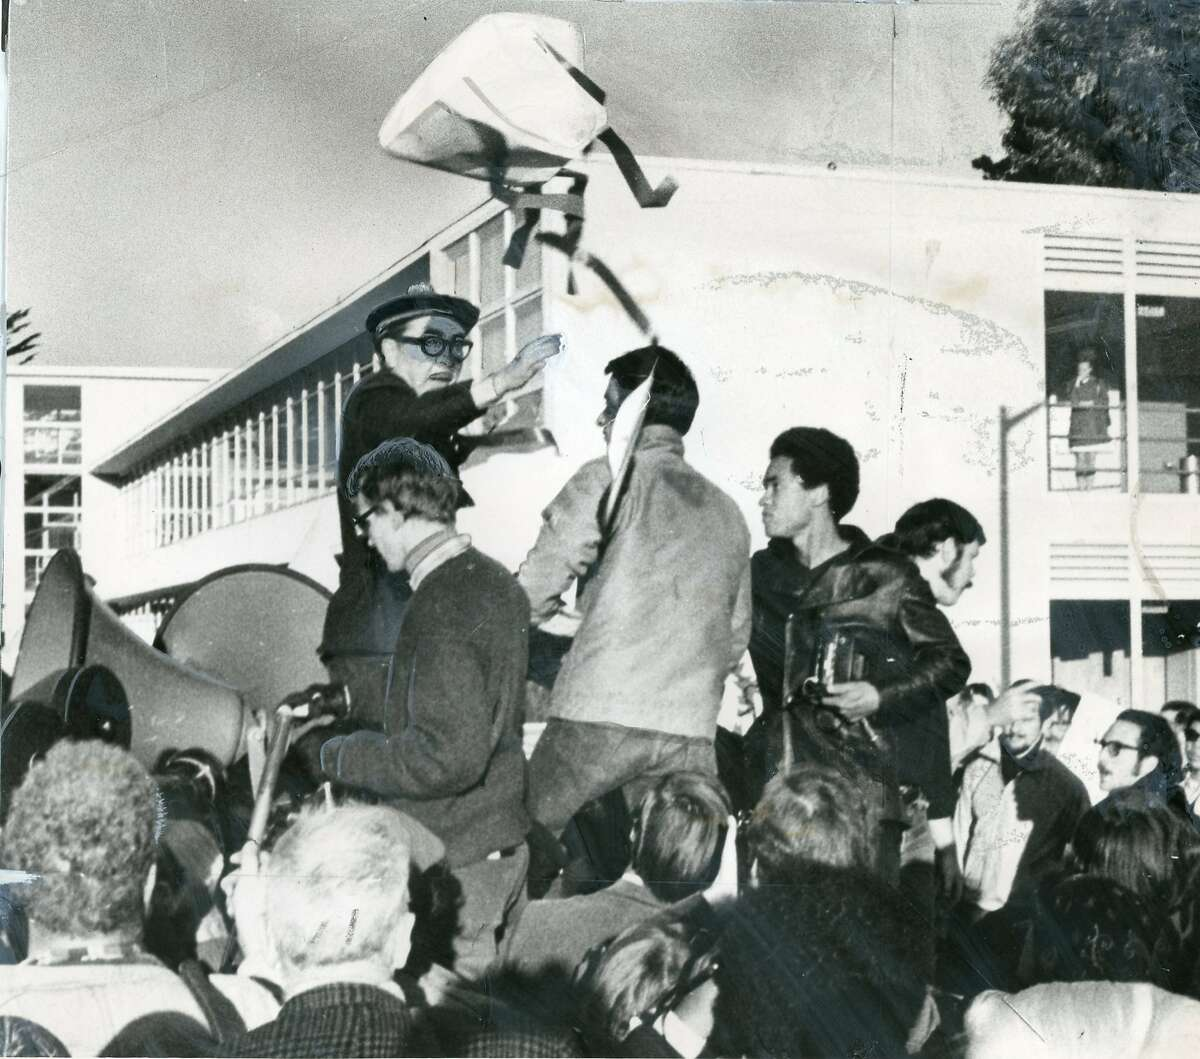 Students confront University President S.I. Hayakawa as he is on a truck during student demonstrations meant to shut San Francisco State college down during a strike, December 1, 1968 Photo ran 12/3/1968, P. 18